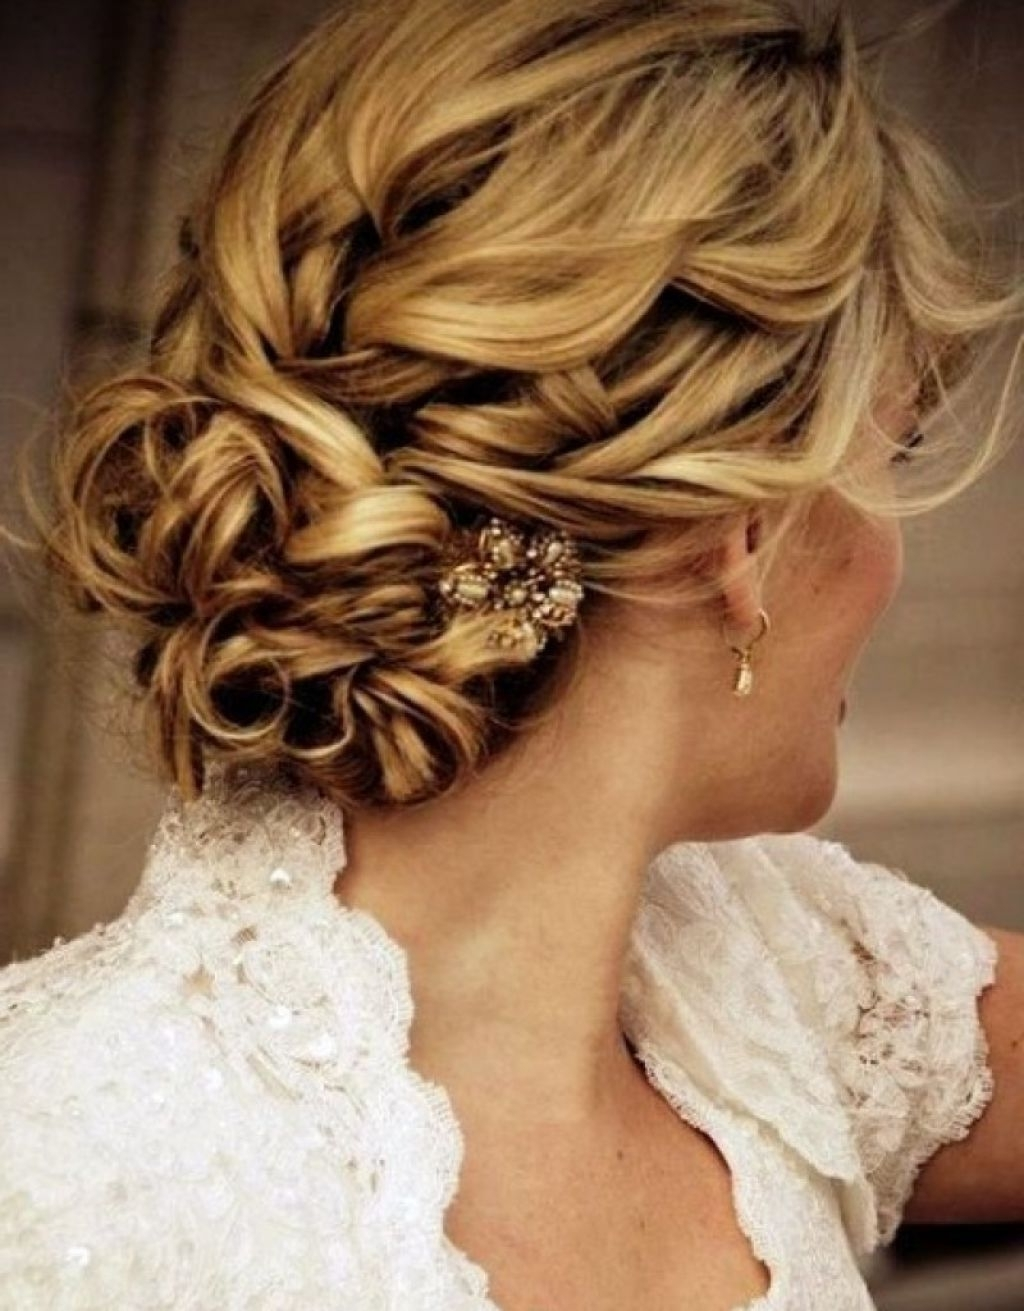 Best And Newest Cute Wedding Hairstyles For Bridesmaids Inside √ 24+ Inspirational Bridesmaid Hairstyles For Medium Hair: Cute (View 10 of 15)